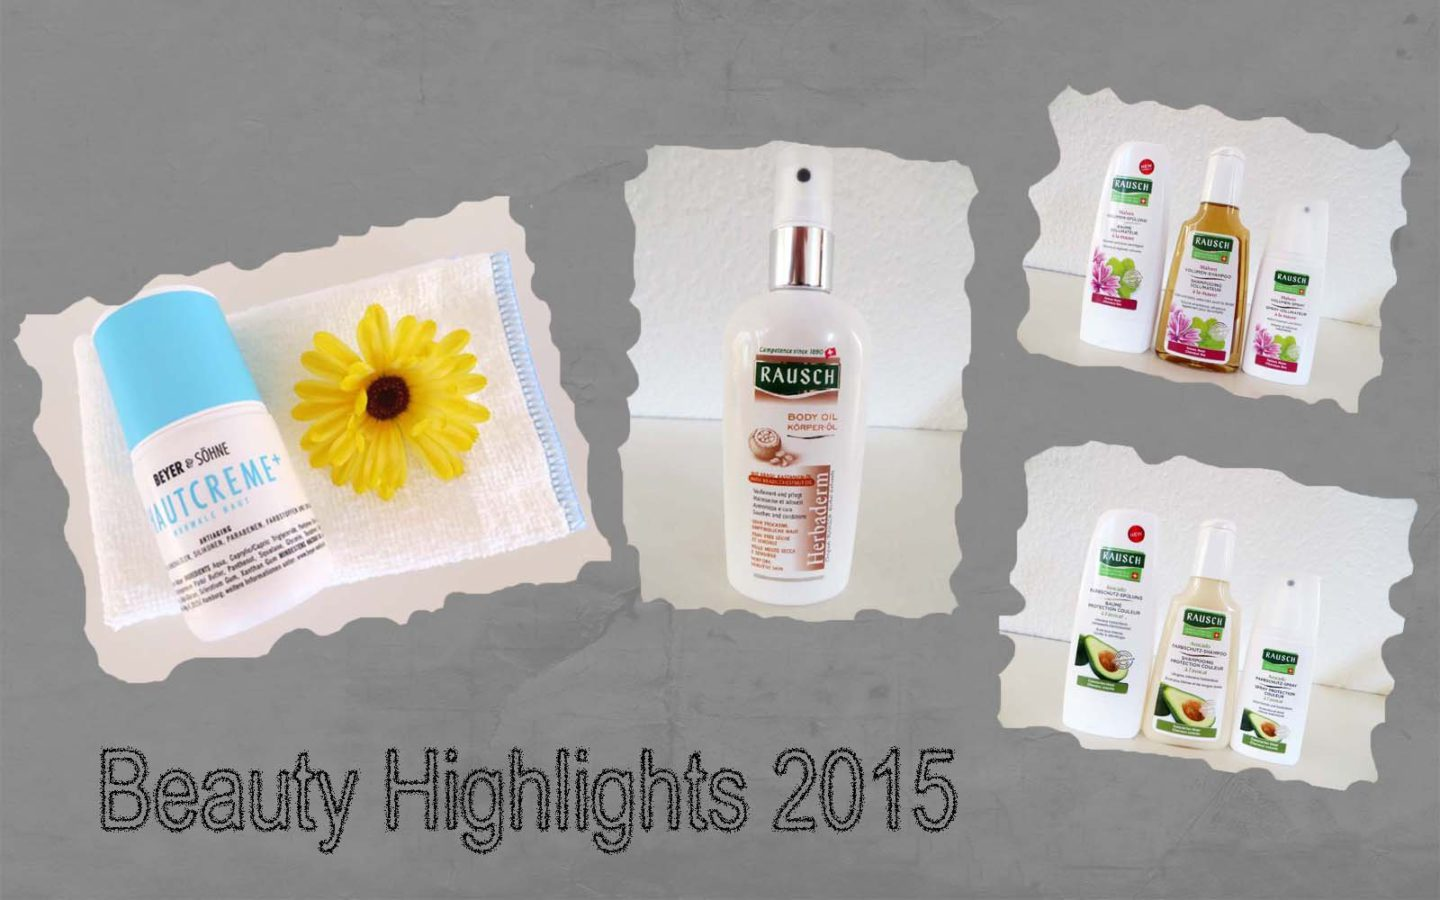 Meine Beauty Highlights 2015 – neues Video